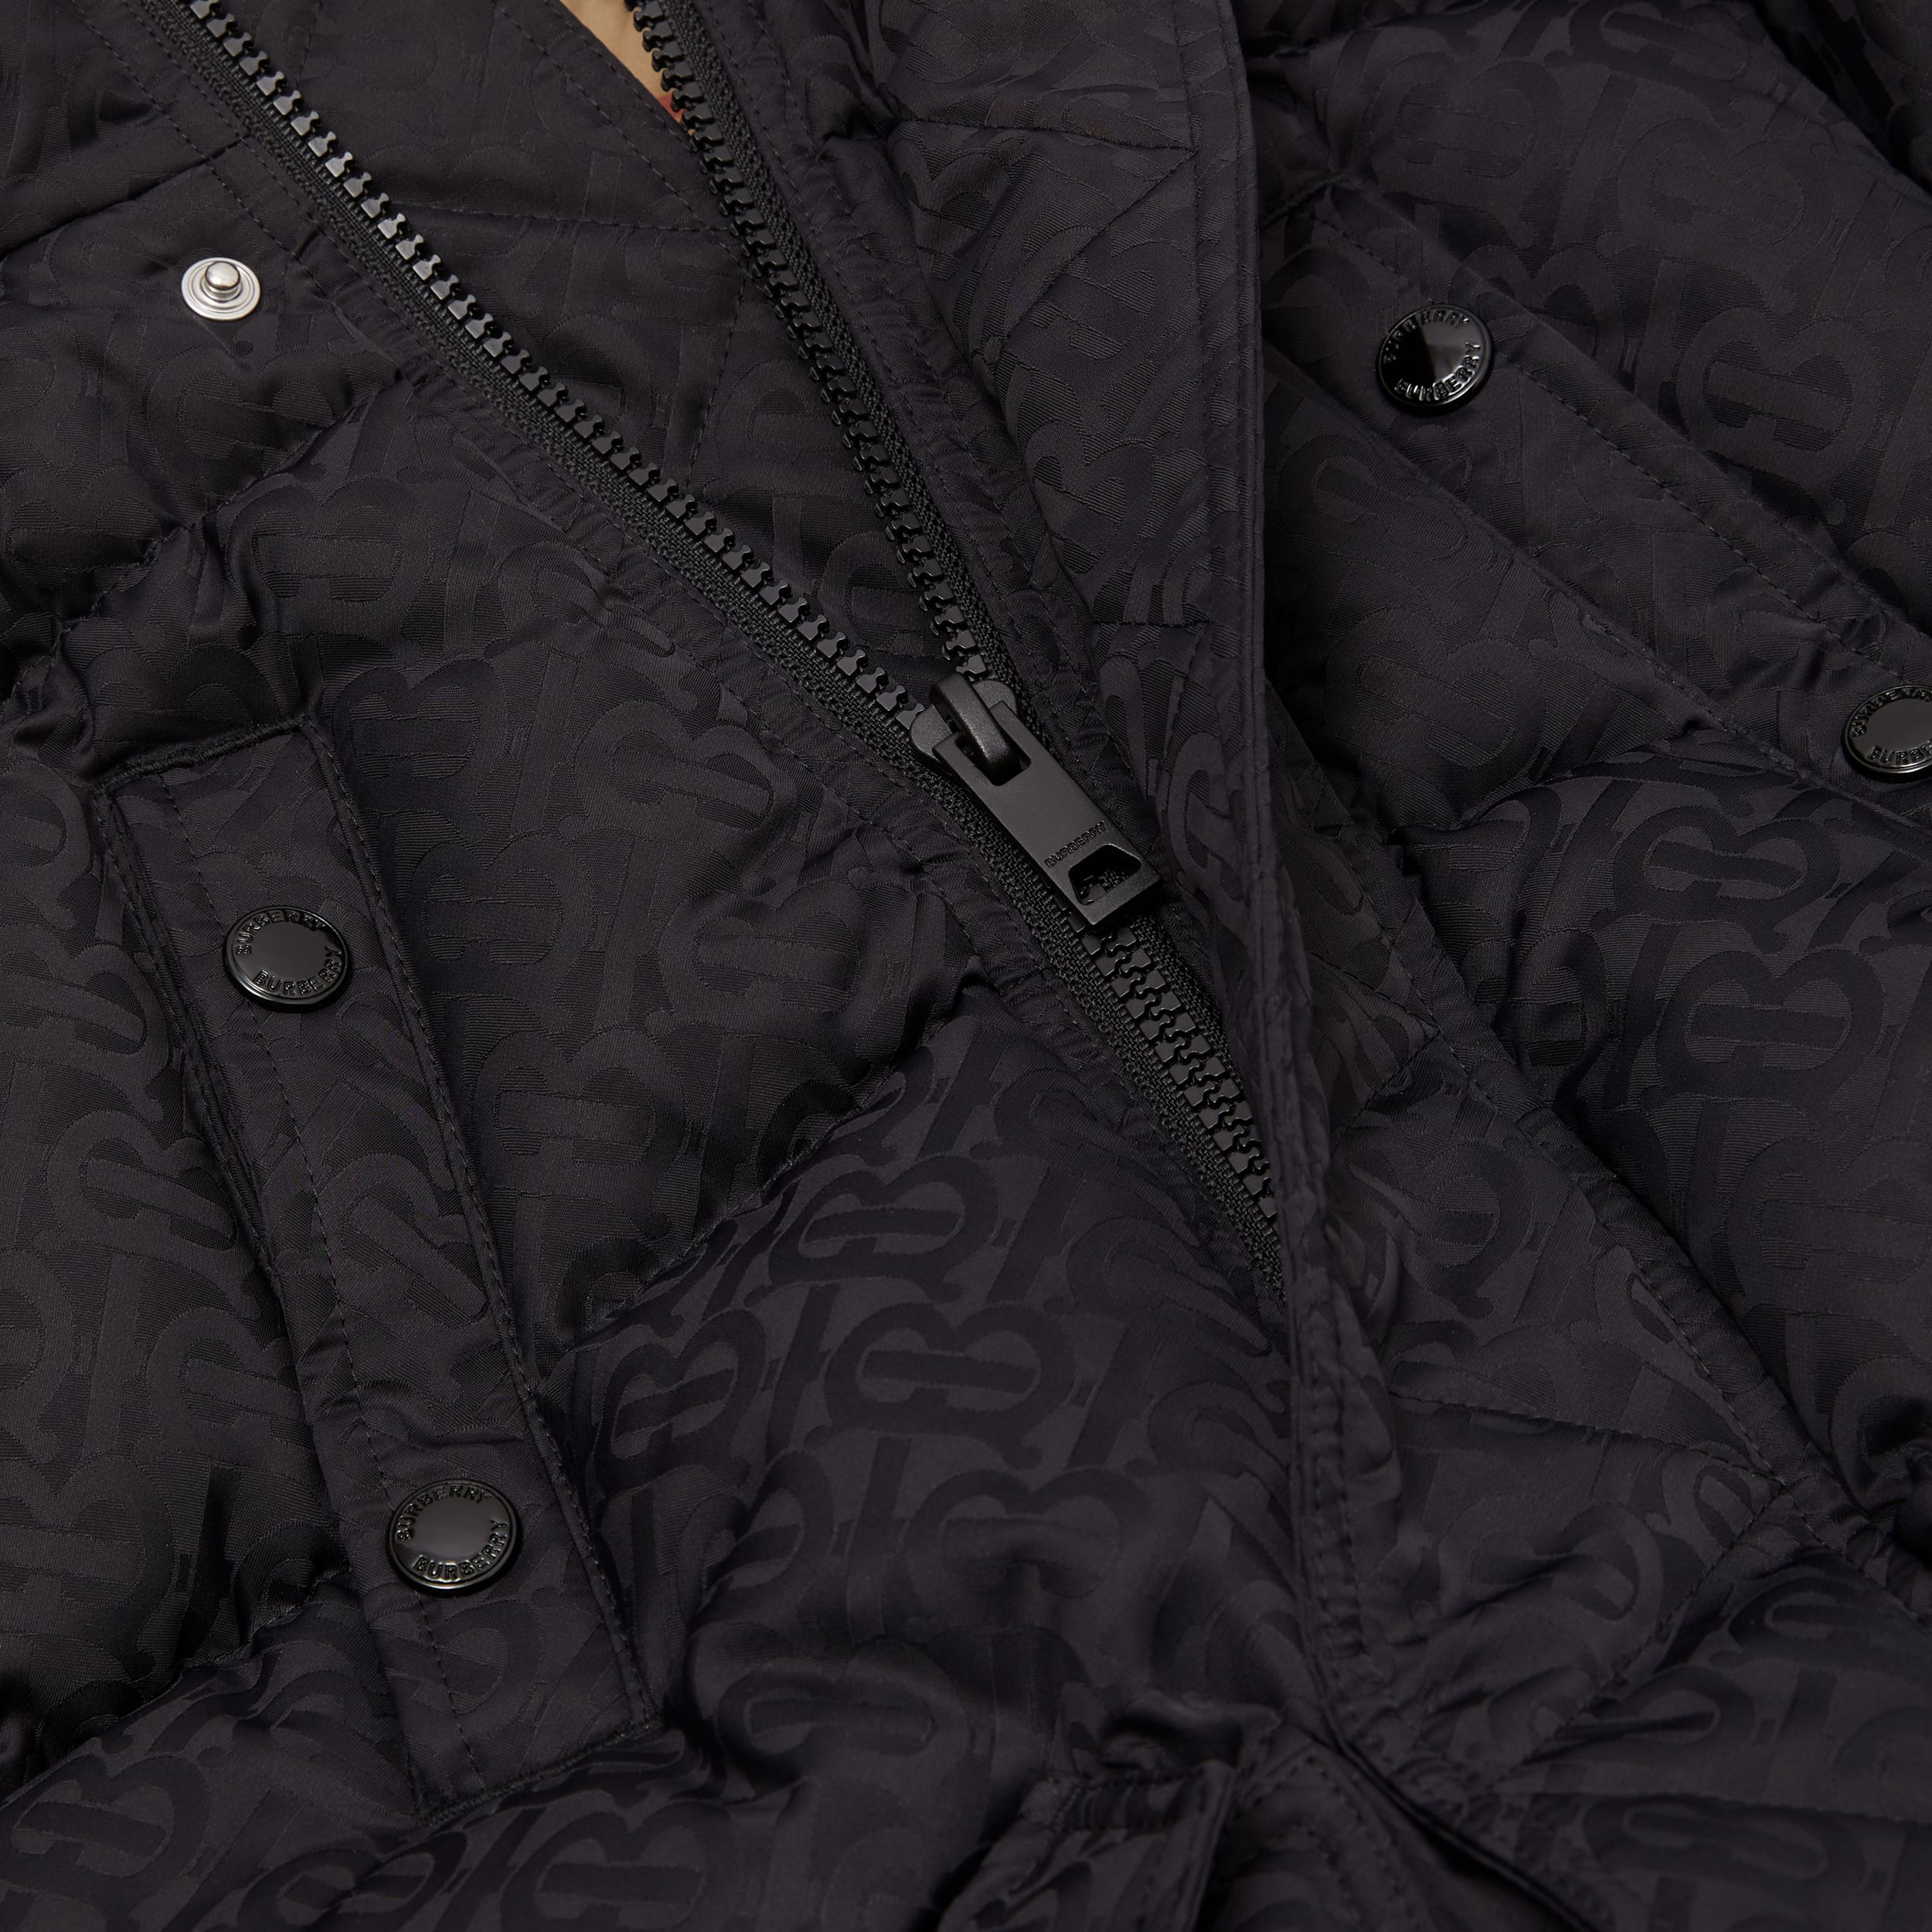 Detachable Hood Monogram Jacquard Puffer Coat in Black | Burberry - 2